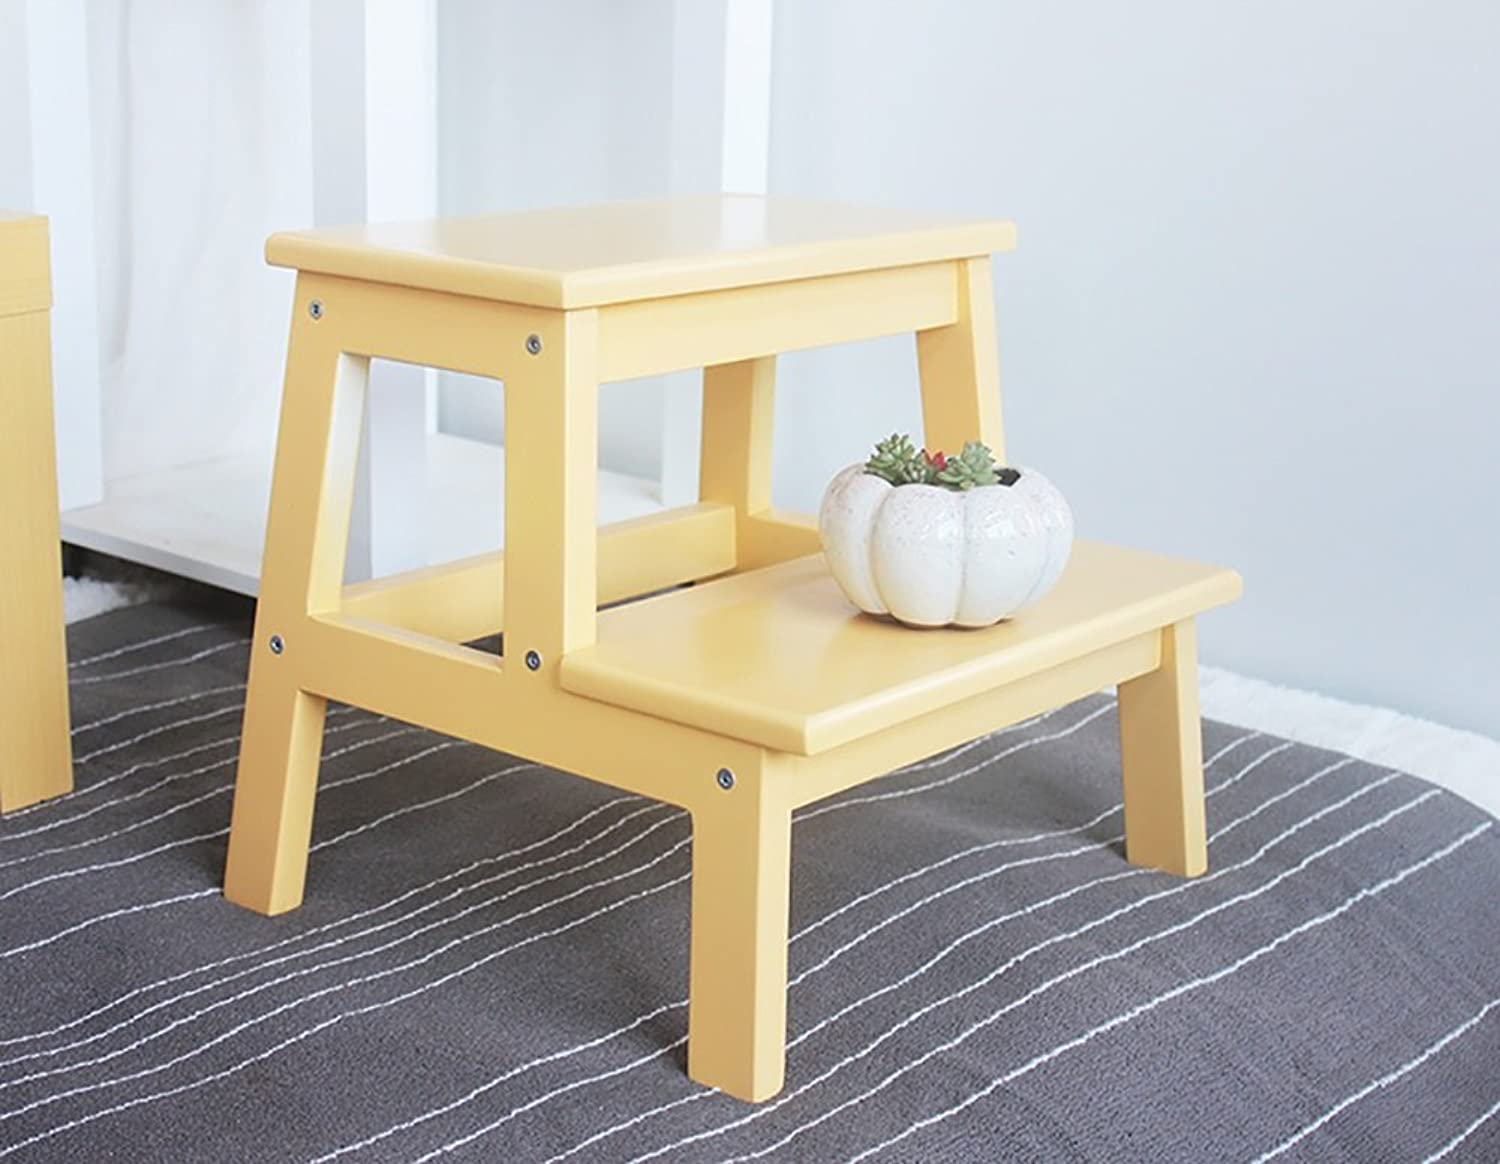 Wooden Solid 2 Step Stool Wood Stool Bench shoes Bathroom Stool (color   Yellow, Size   L)